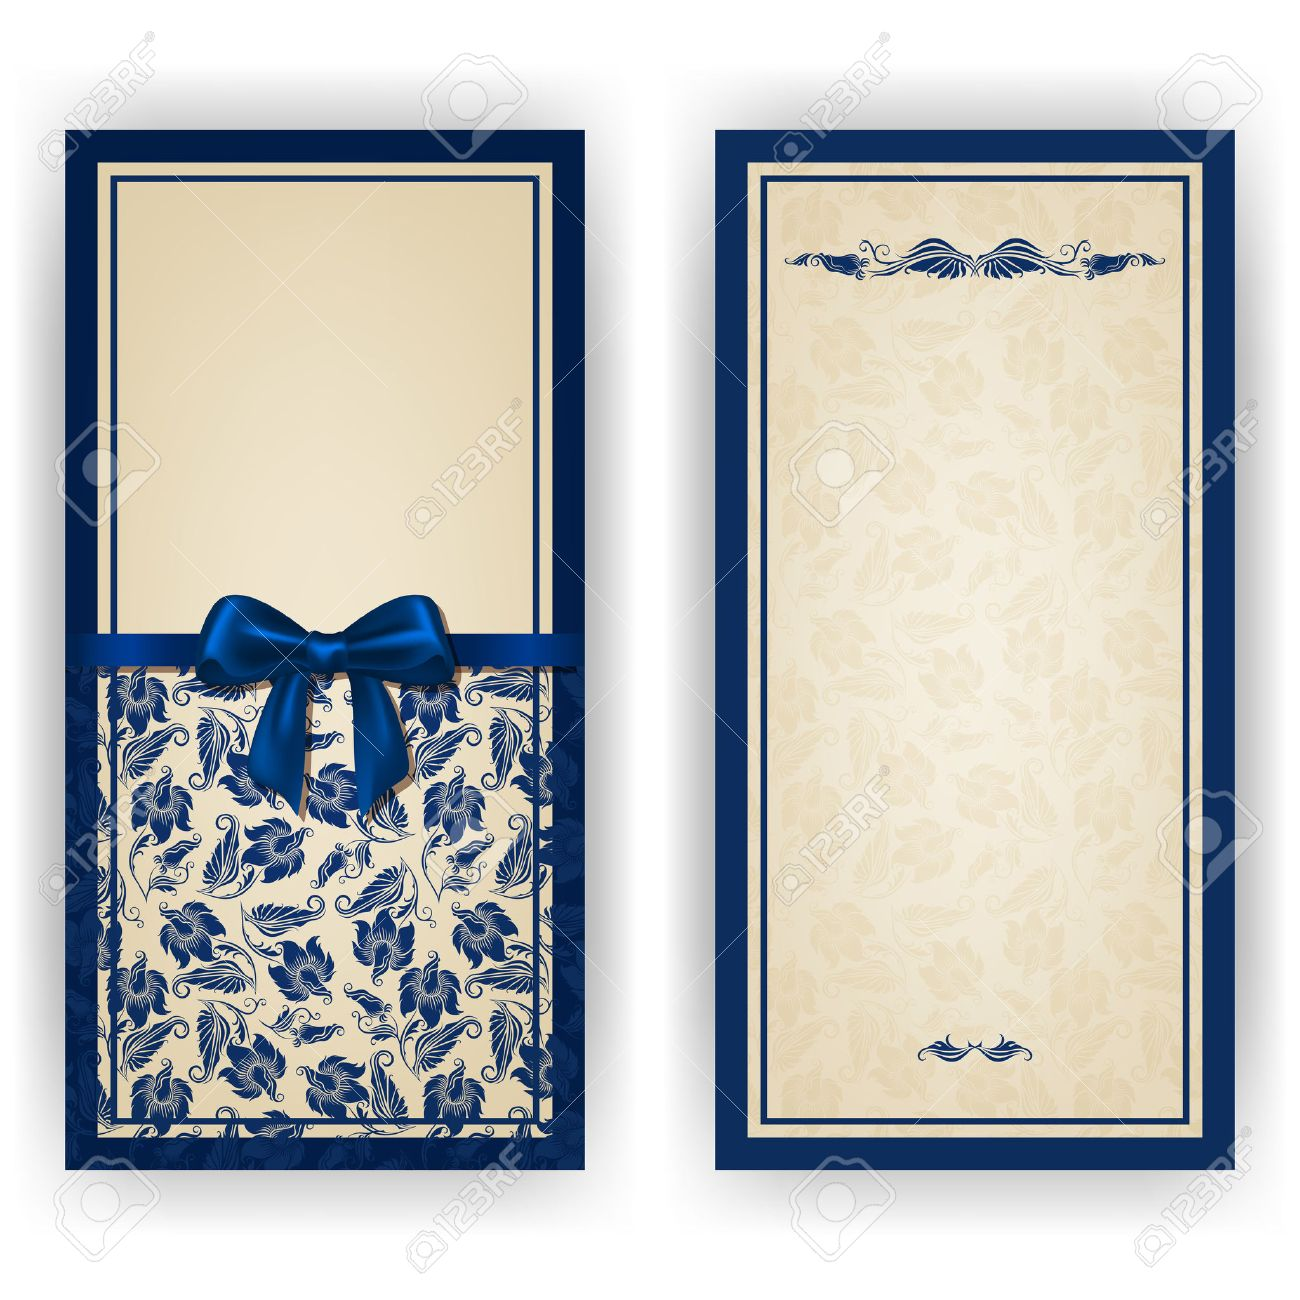 royal invitation scroll images stock pictures royalty royal invitation scroll elegant template luxury invitation card lace or nt bow